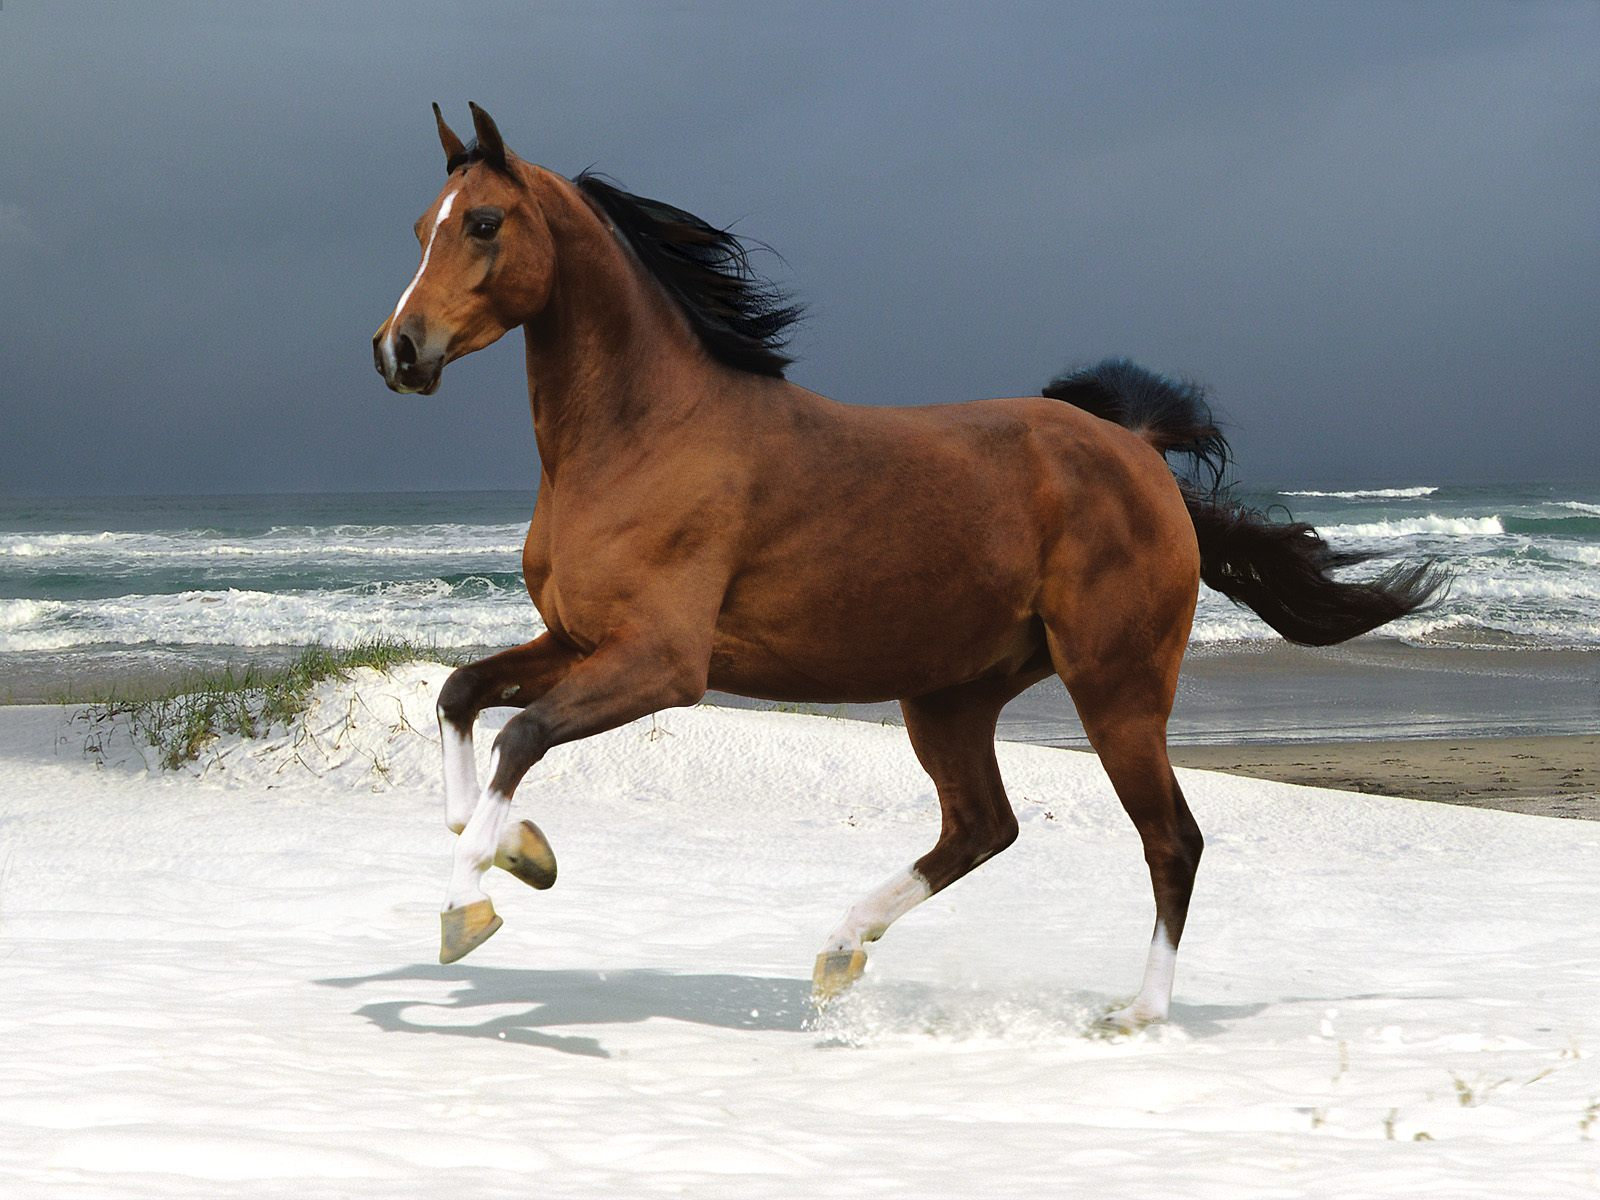 wild horse hd wallpapers - photo #21